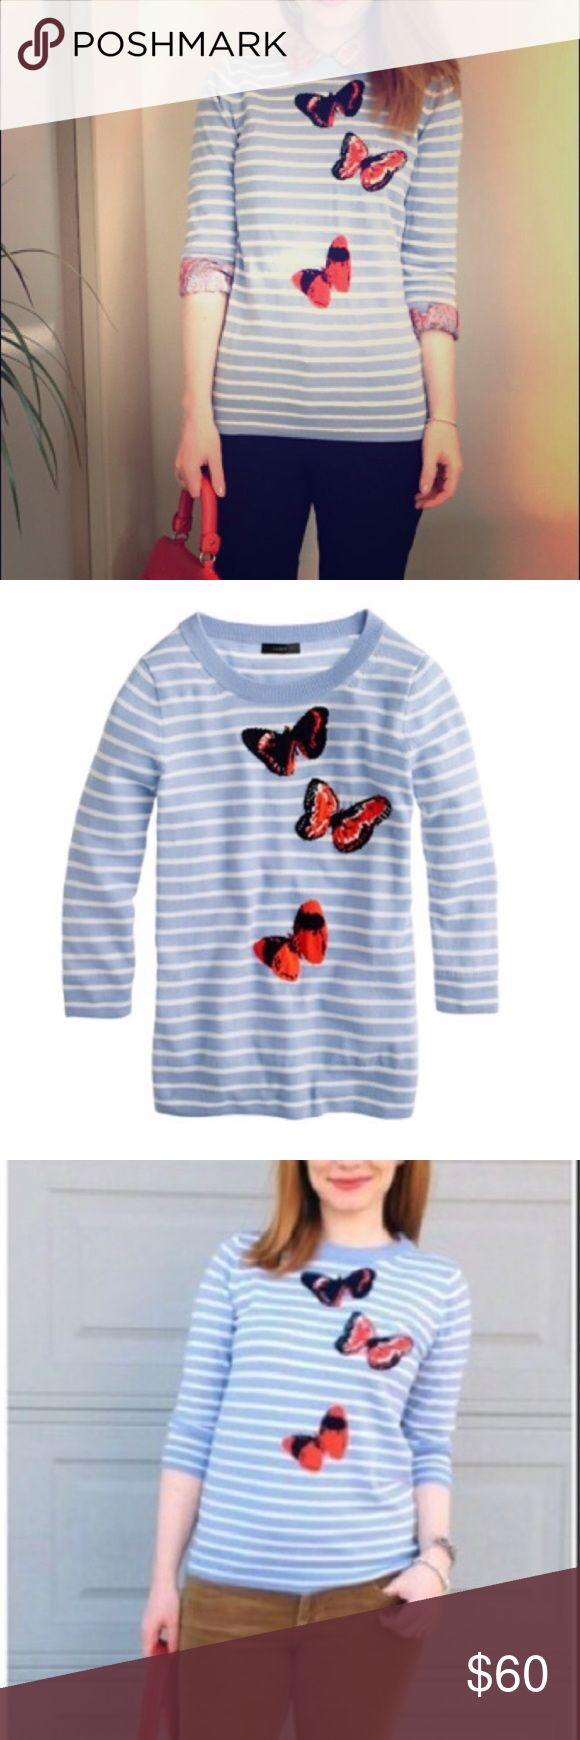 J. CREW Tippi Sweater Striped Monarch Butterfly We combined three of our favorite things to create one must-have piece: our classically styled merino Tippi sweater, crisp stripe, and a vibrant monarch butterfly motif from our women's designer that was inspired by the vivid botanicals he used to look at in Time Life nature books as a child. It's intarsia knit, which means the design is knit into the sweater instead of on top (a much more difficult process, but it's the key to getting the…